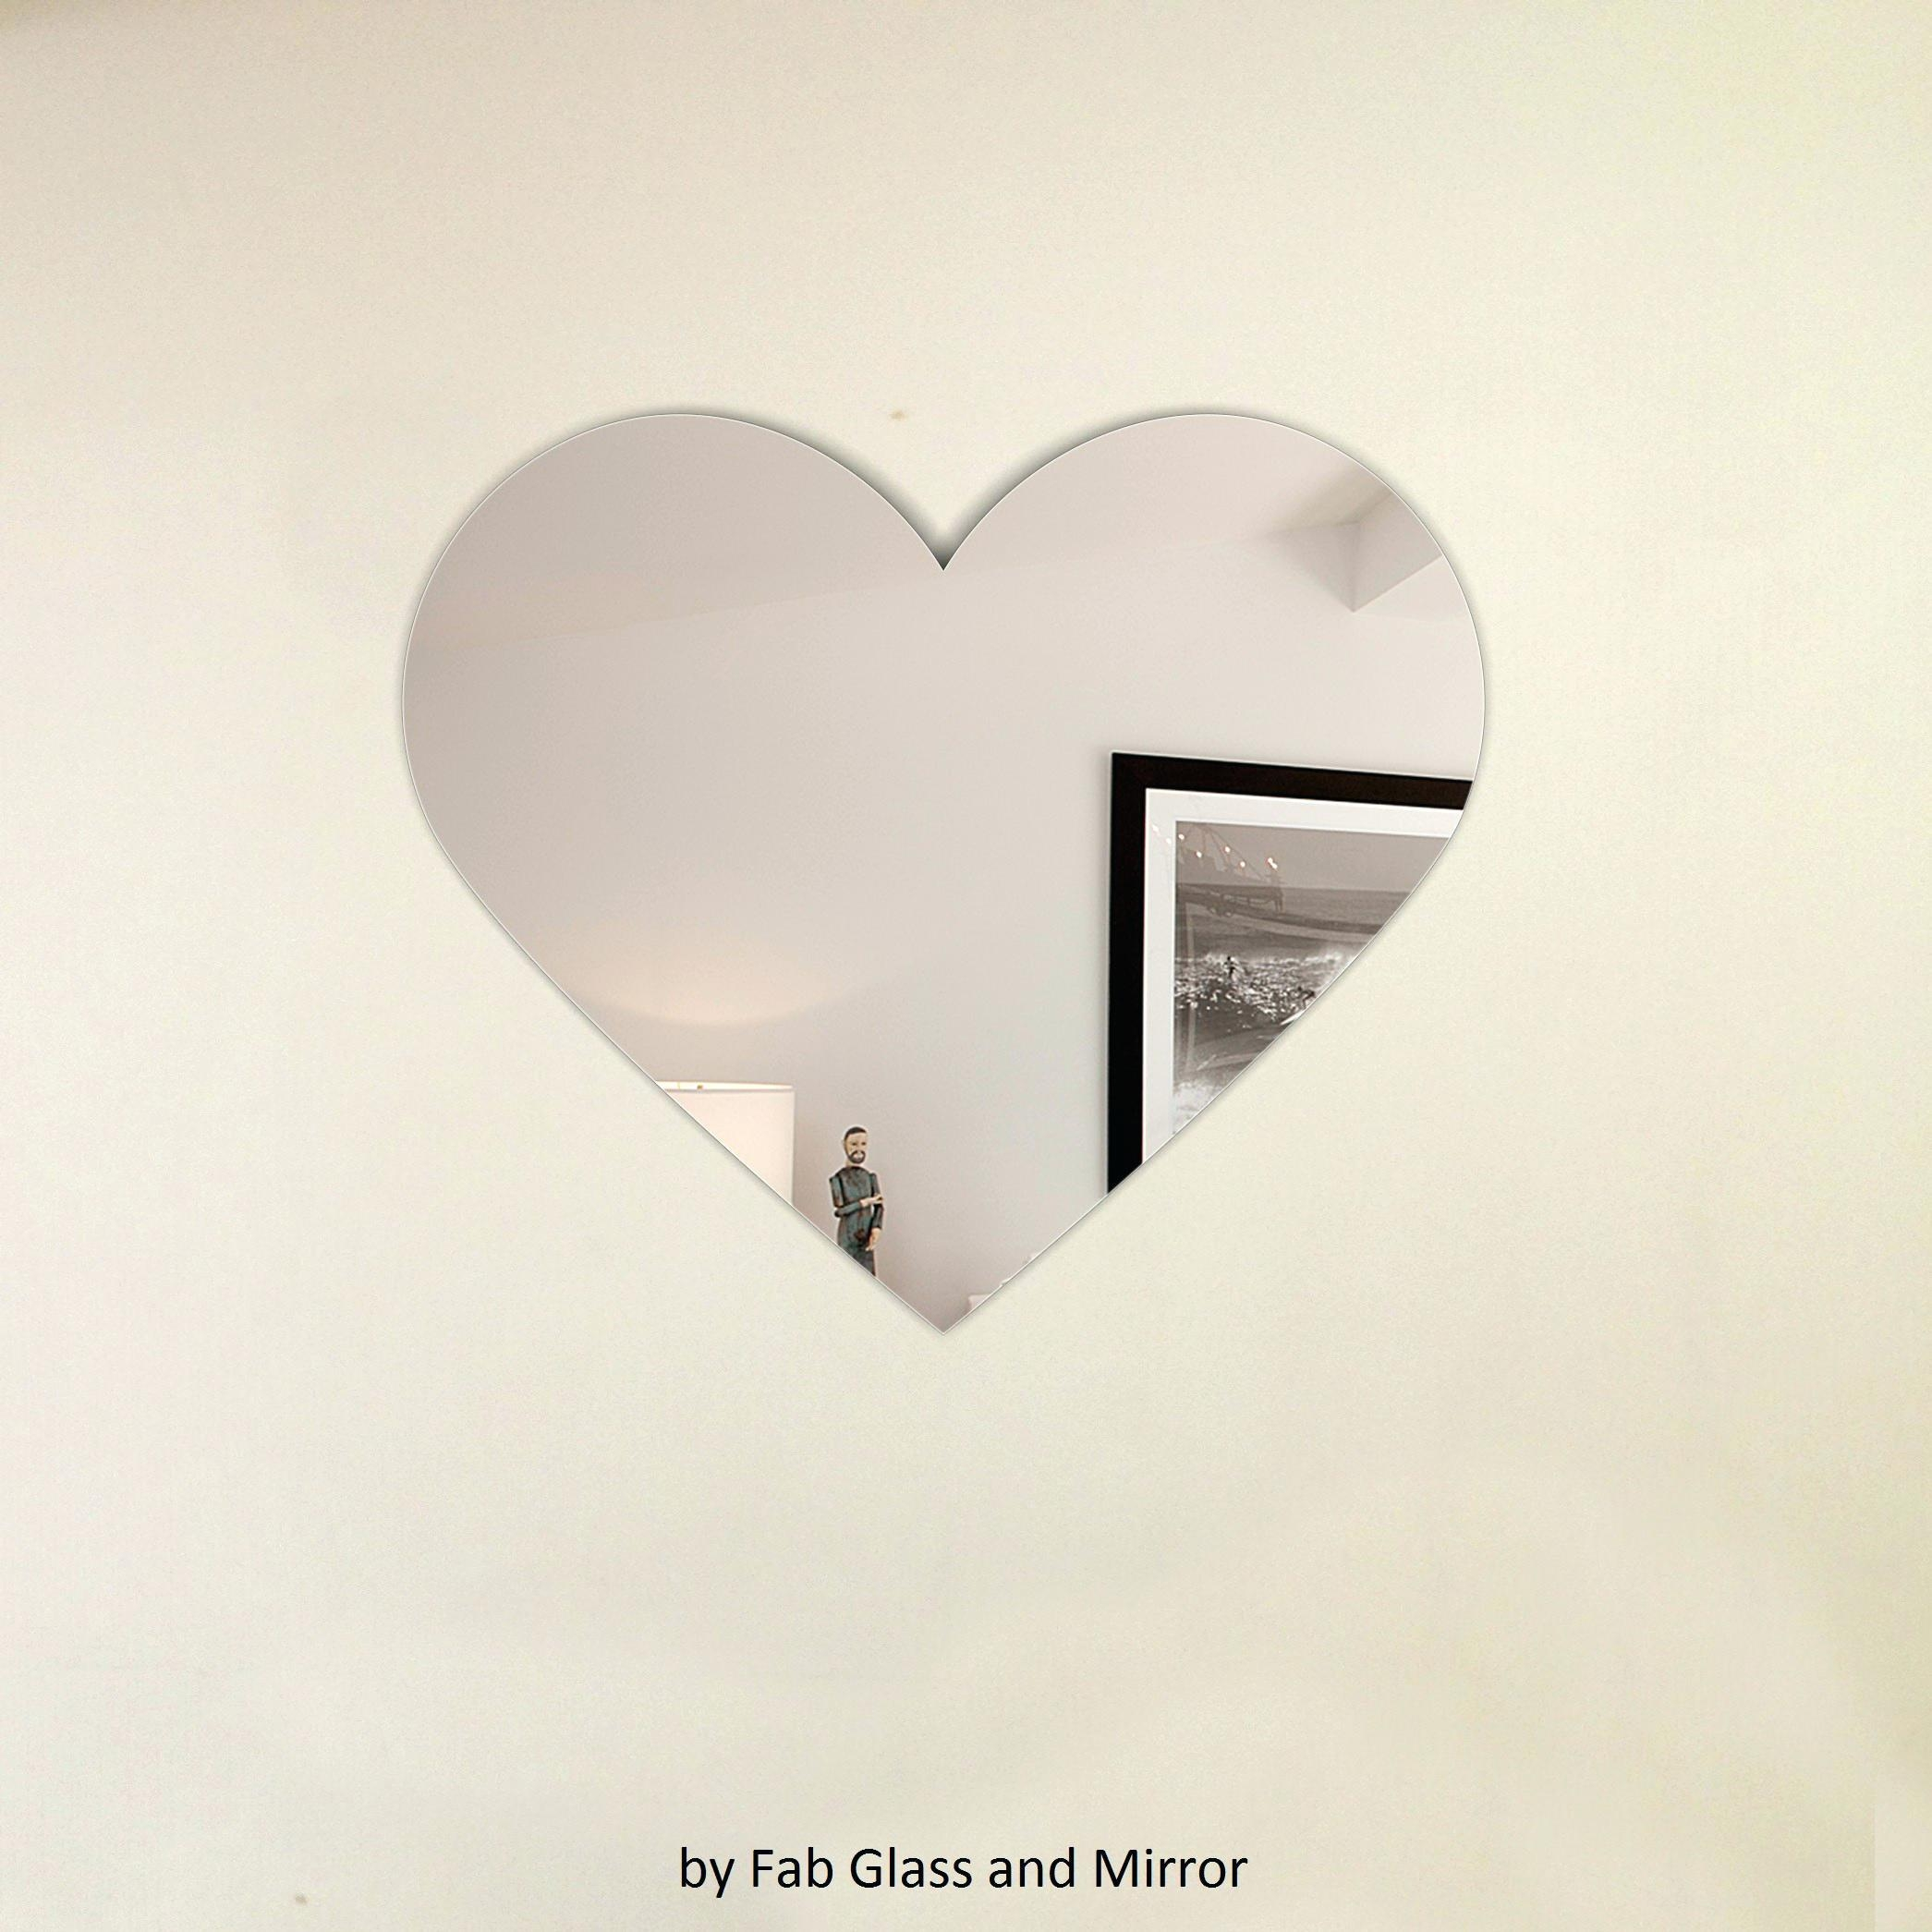 Heart Shape Venetian Wall Mirror 2Ft8 80Cm Lightbox Moreviewlarge Within Heart Shaped Mirrors For Walls (View 6 of 20)